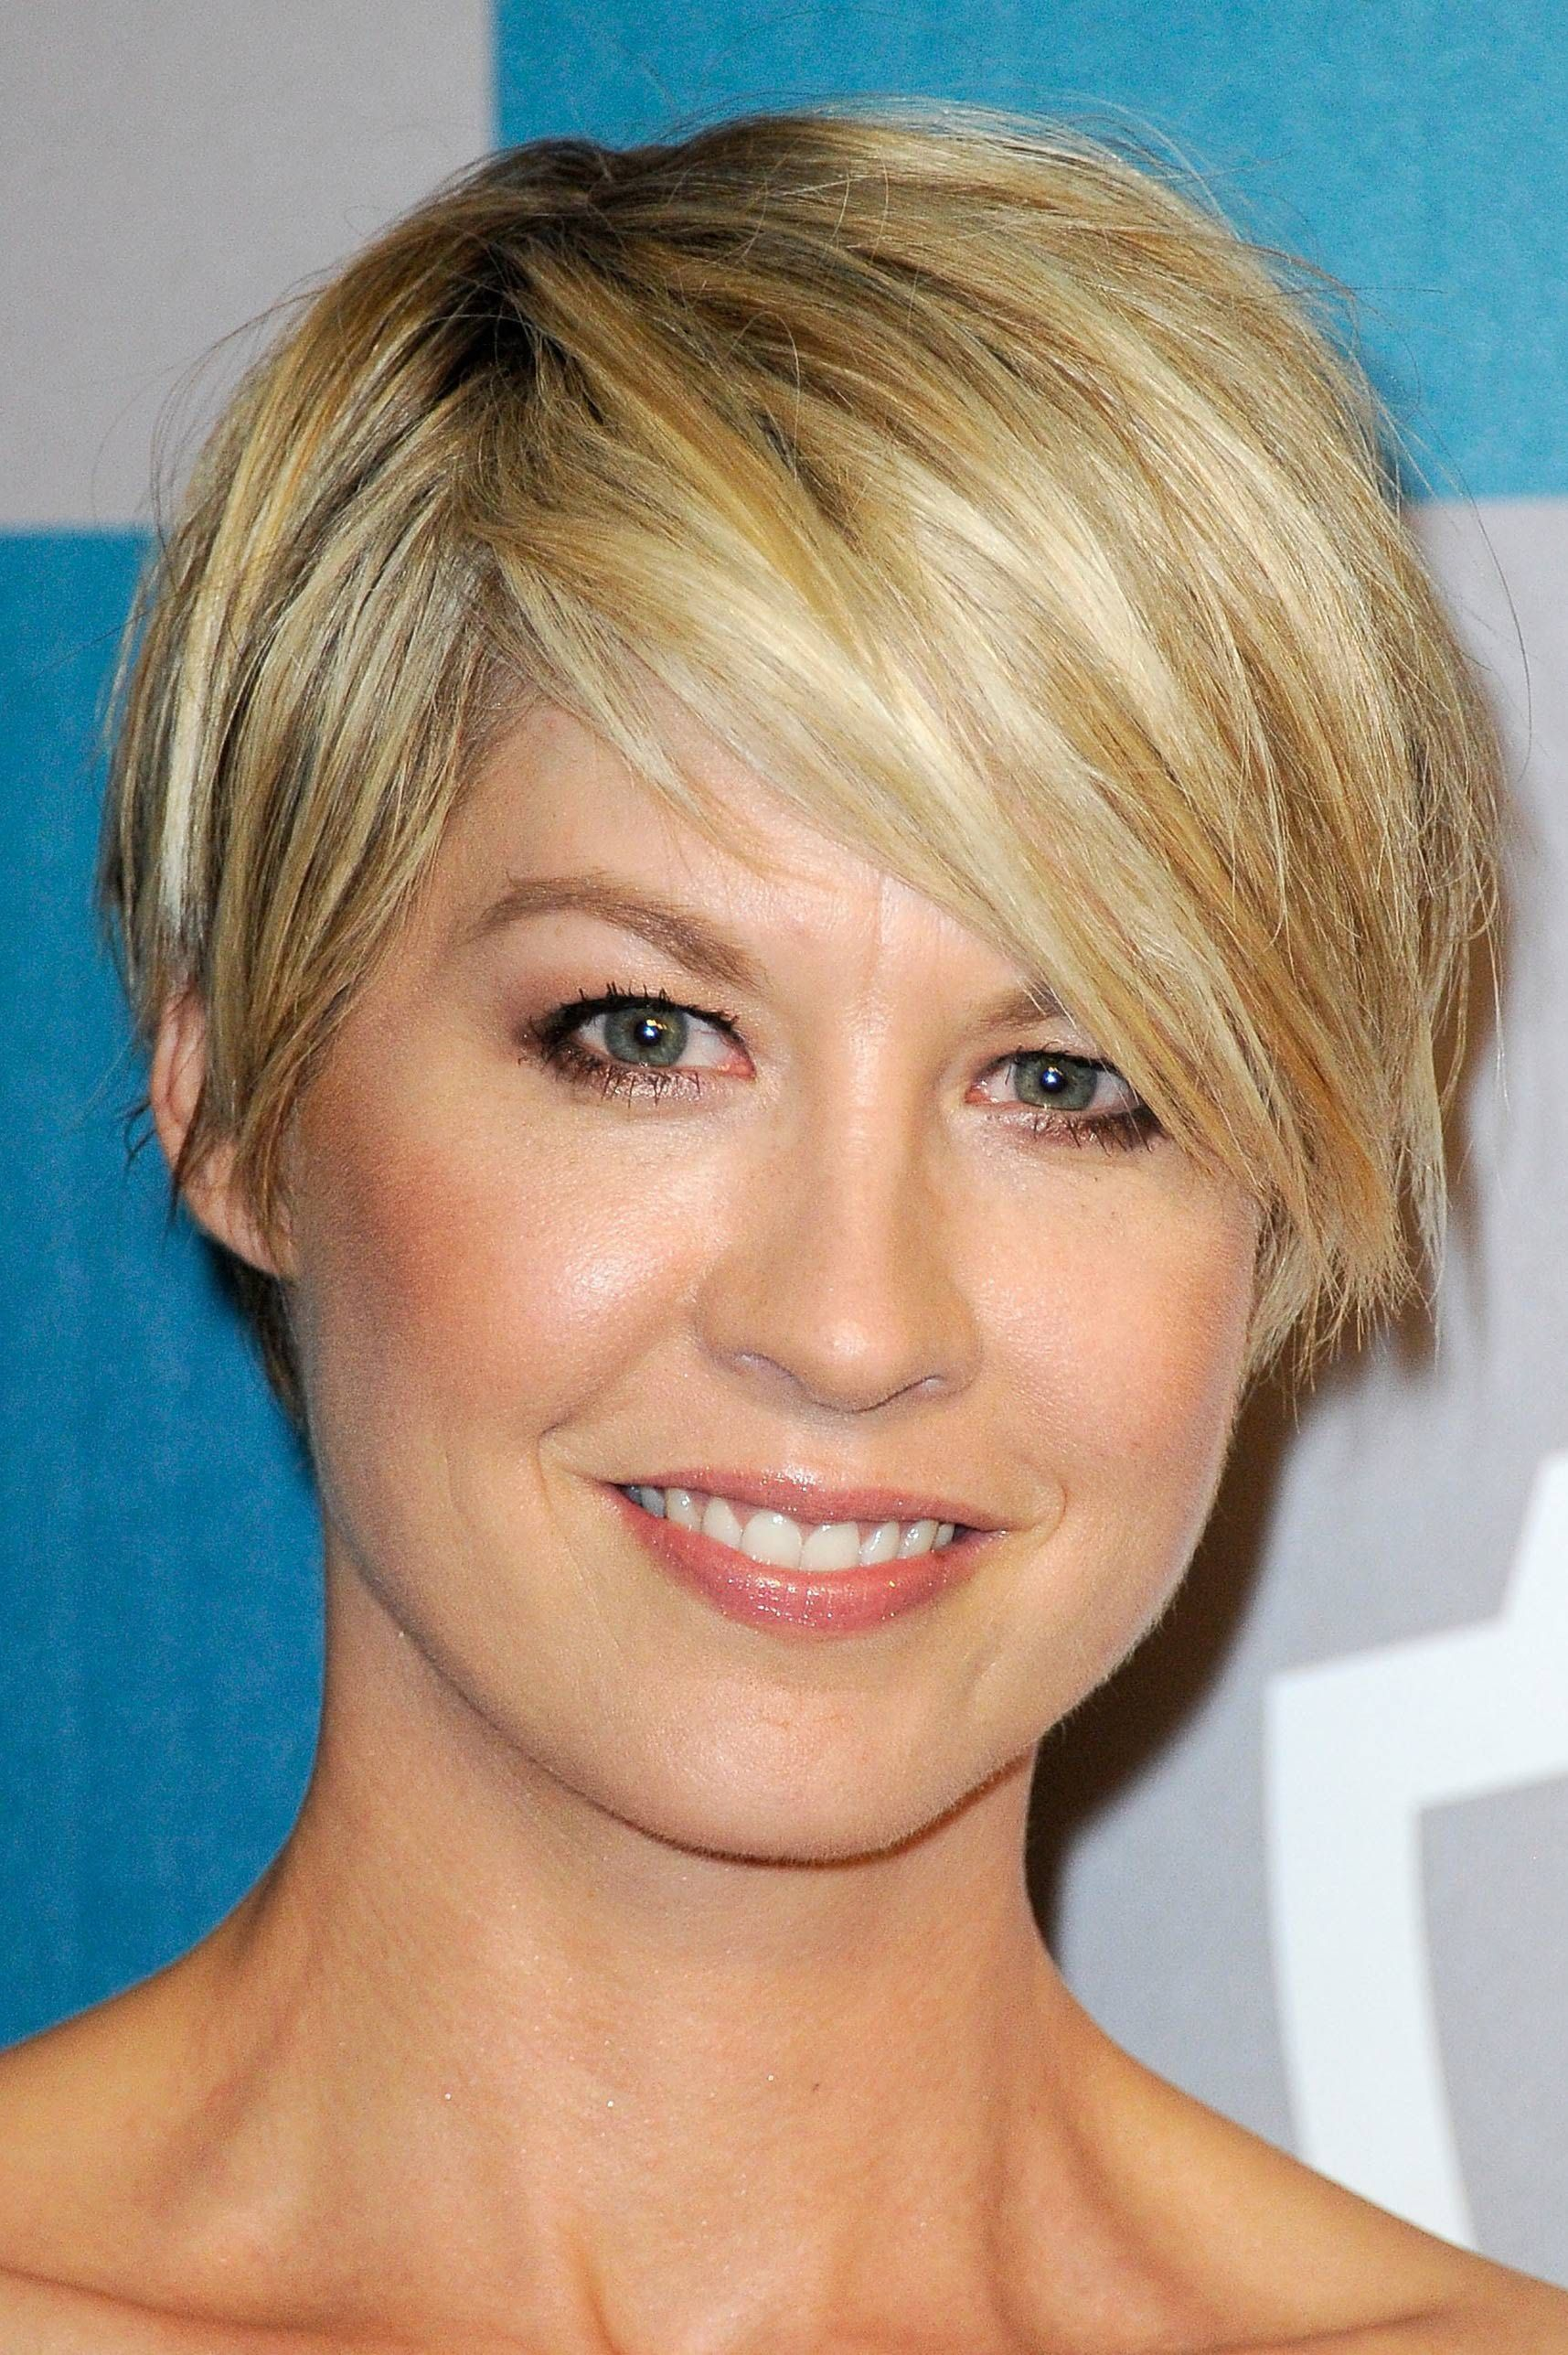 Sexy short hairstyle ideas inspired by celebrities jenna elfman